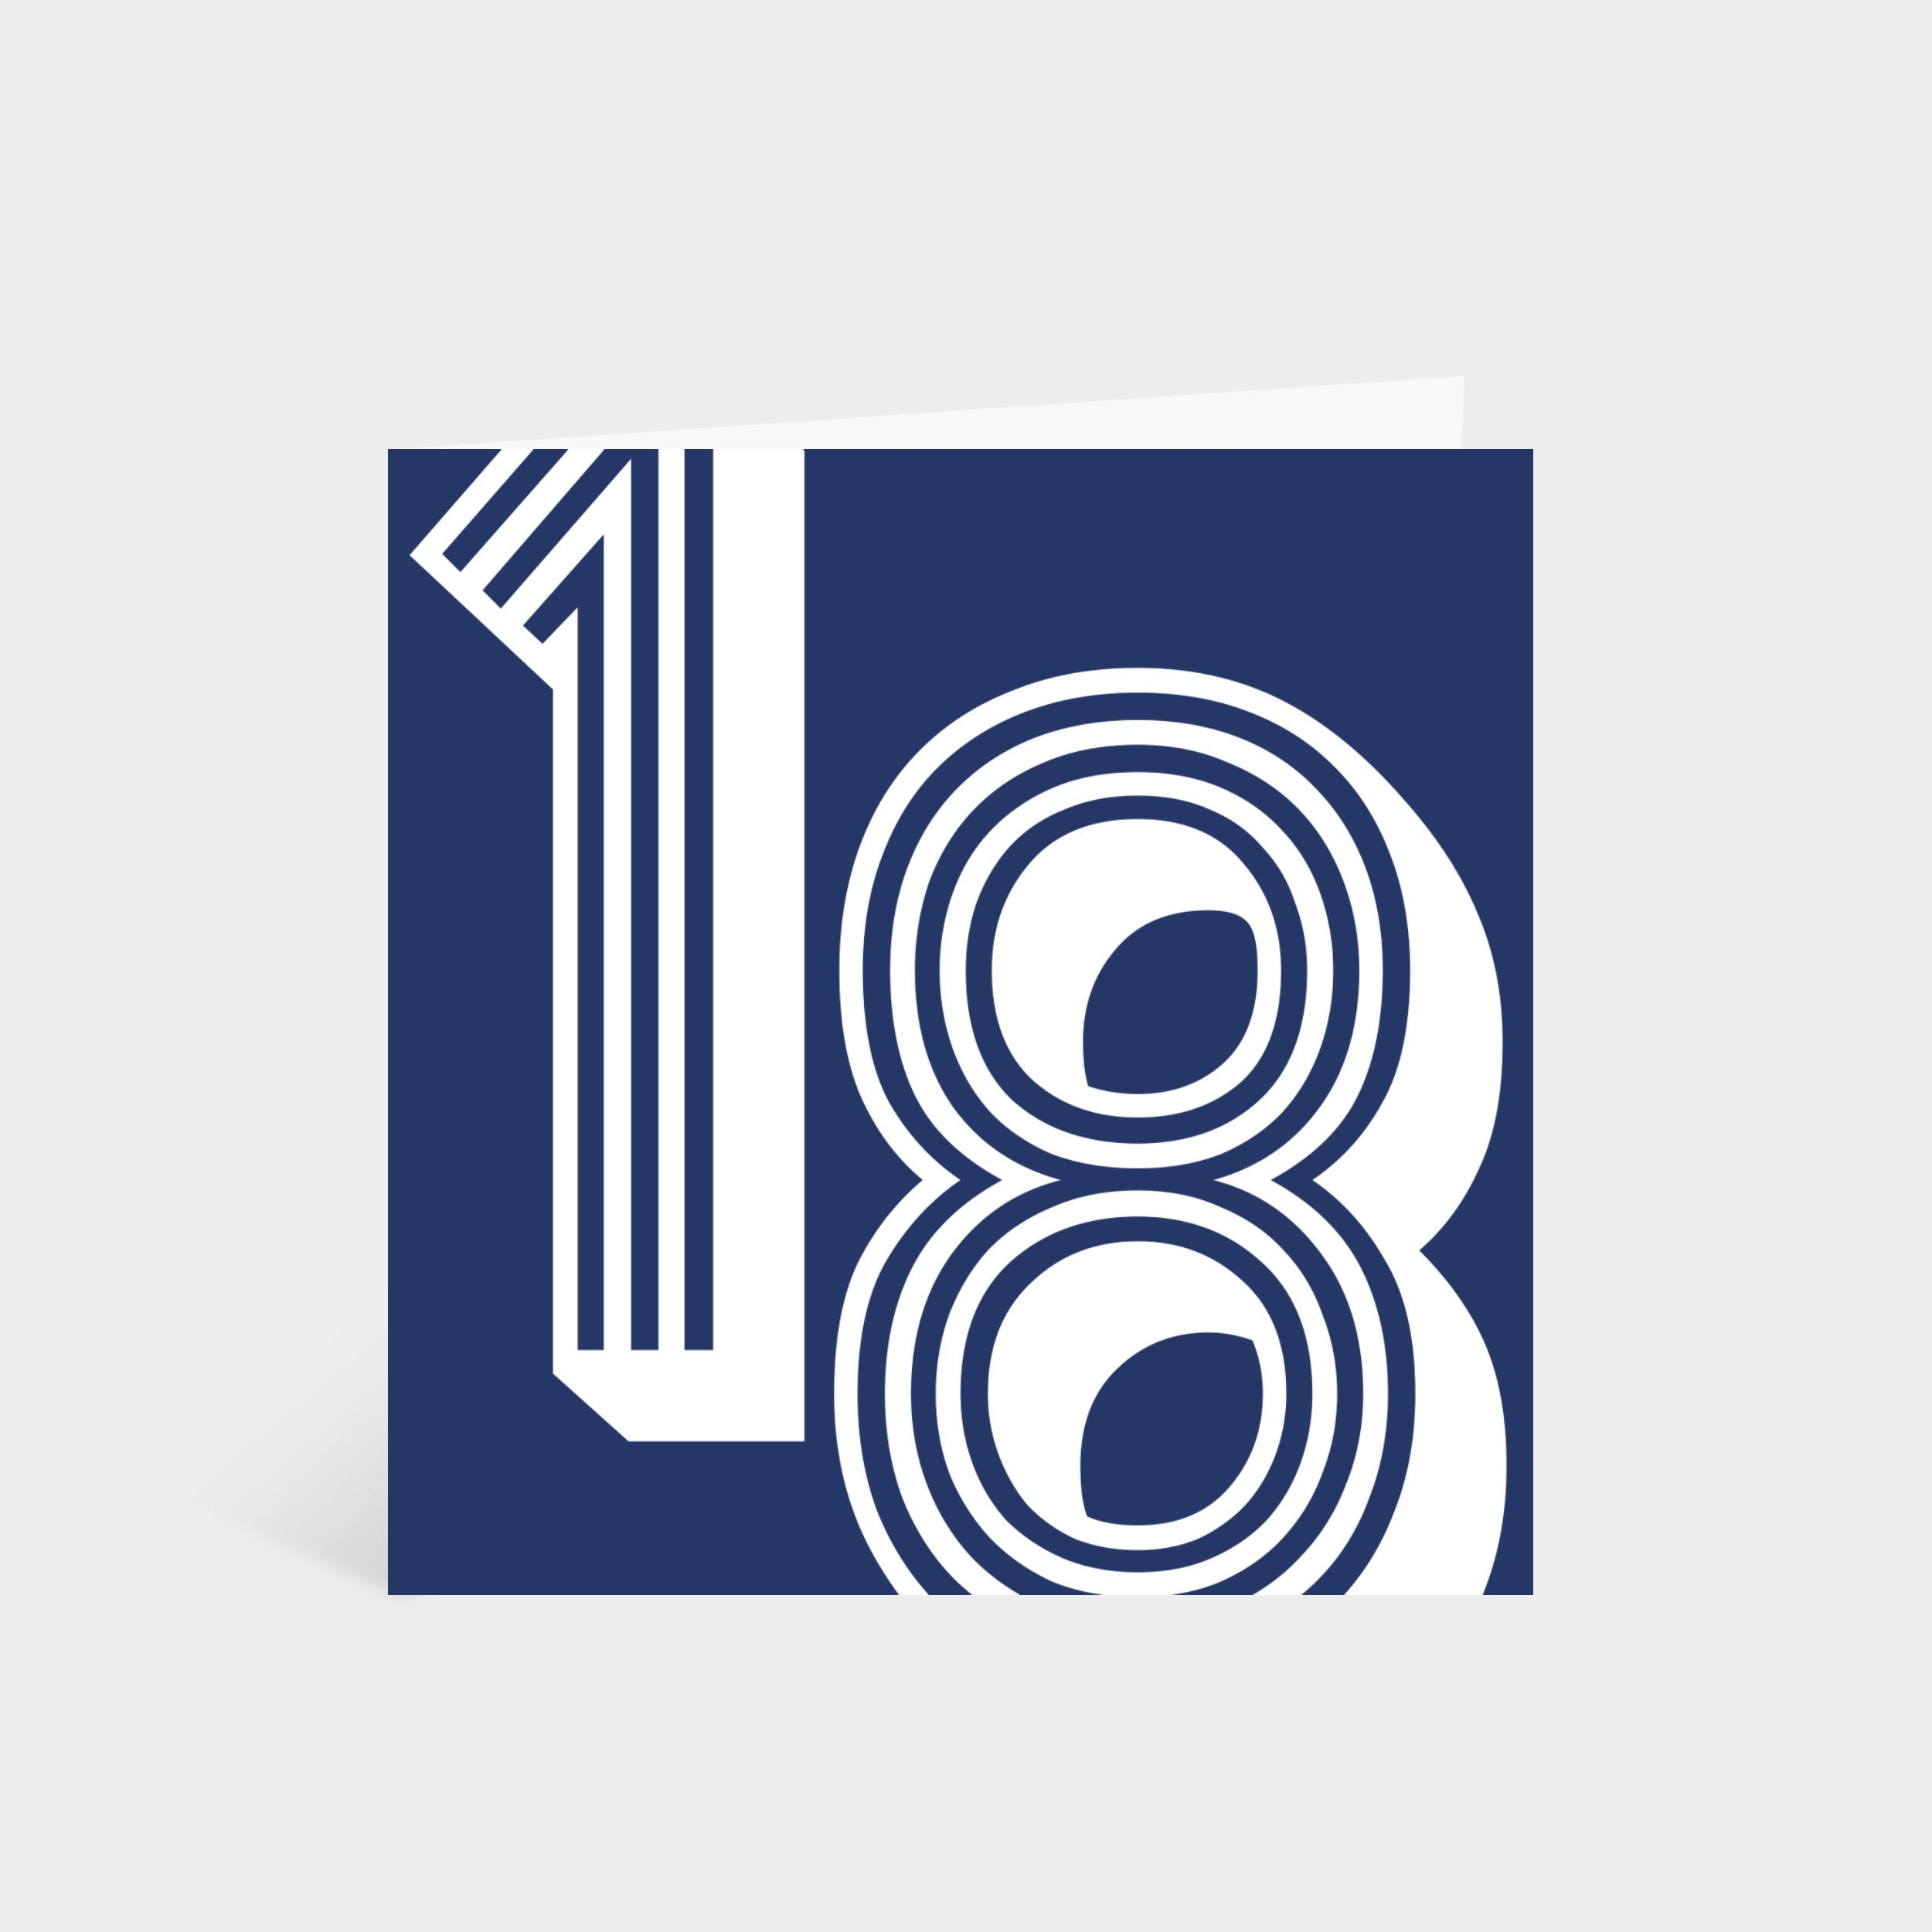 Standing square navy card with the number '18' in a white large retro font